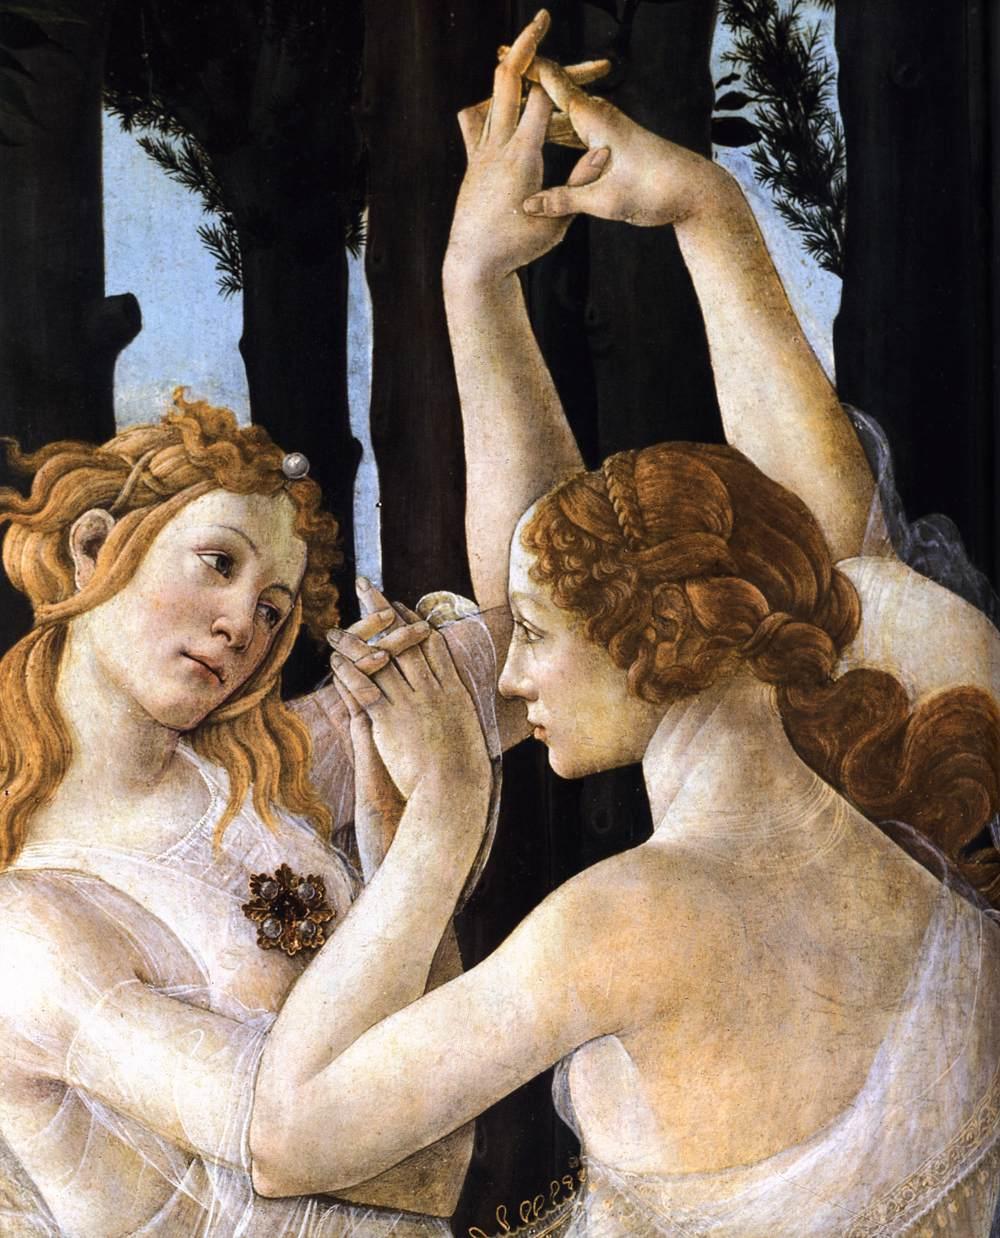 detail from Primavera, 1482